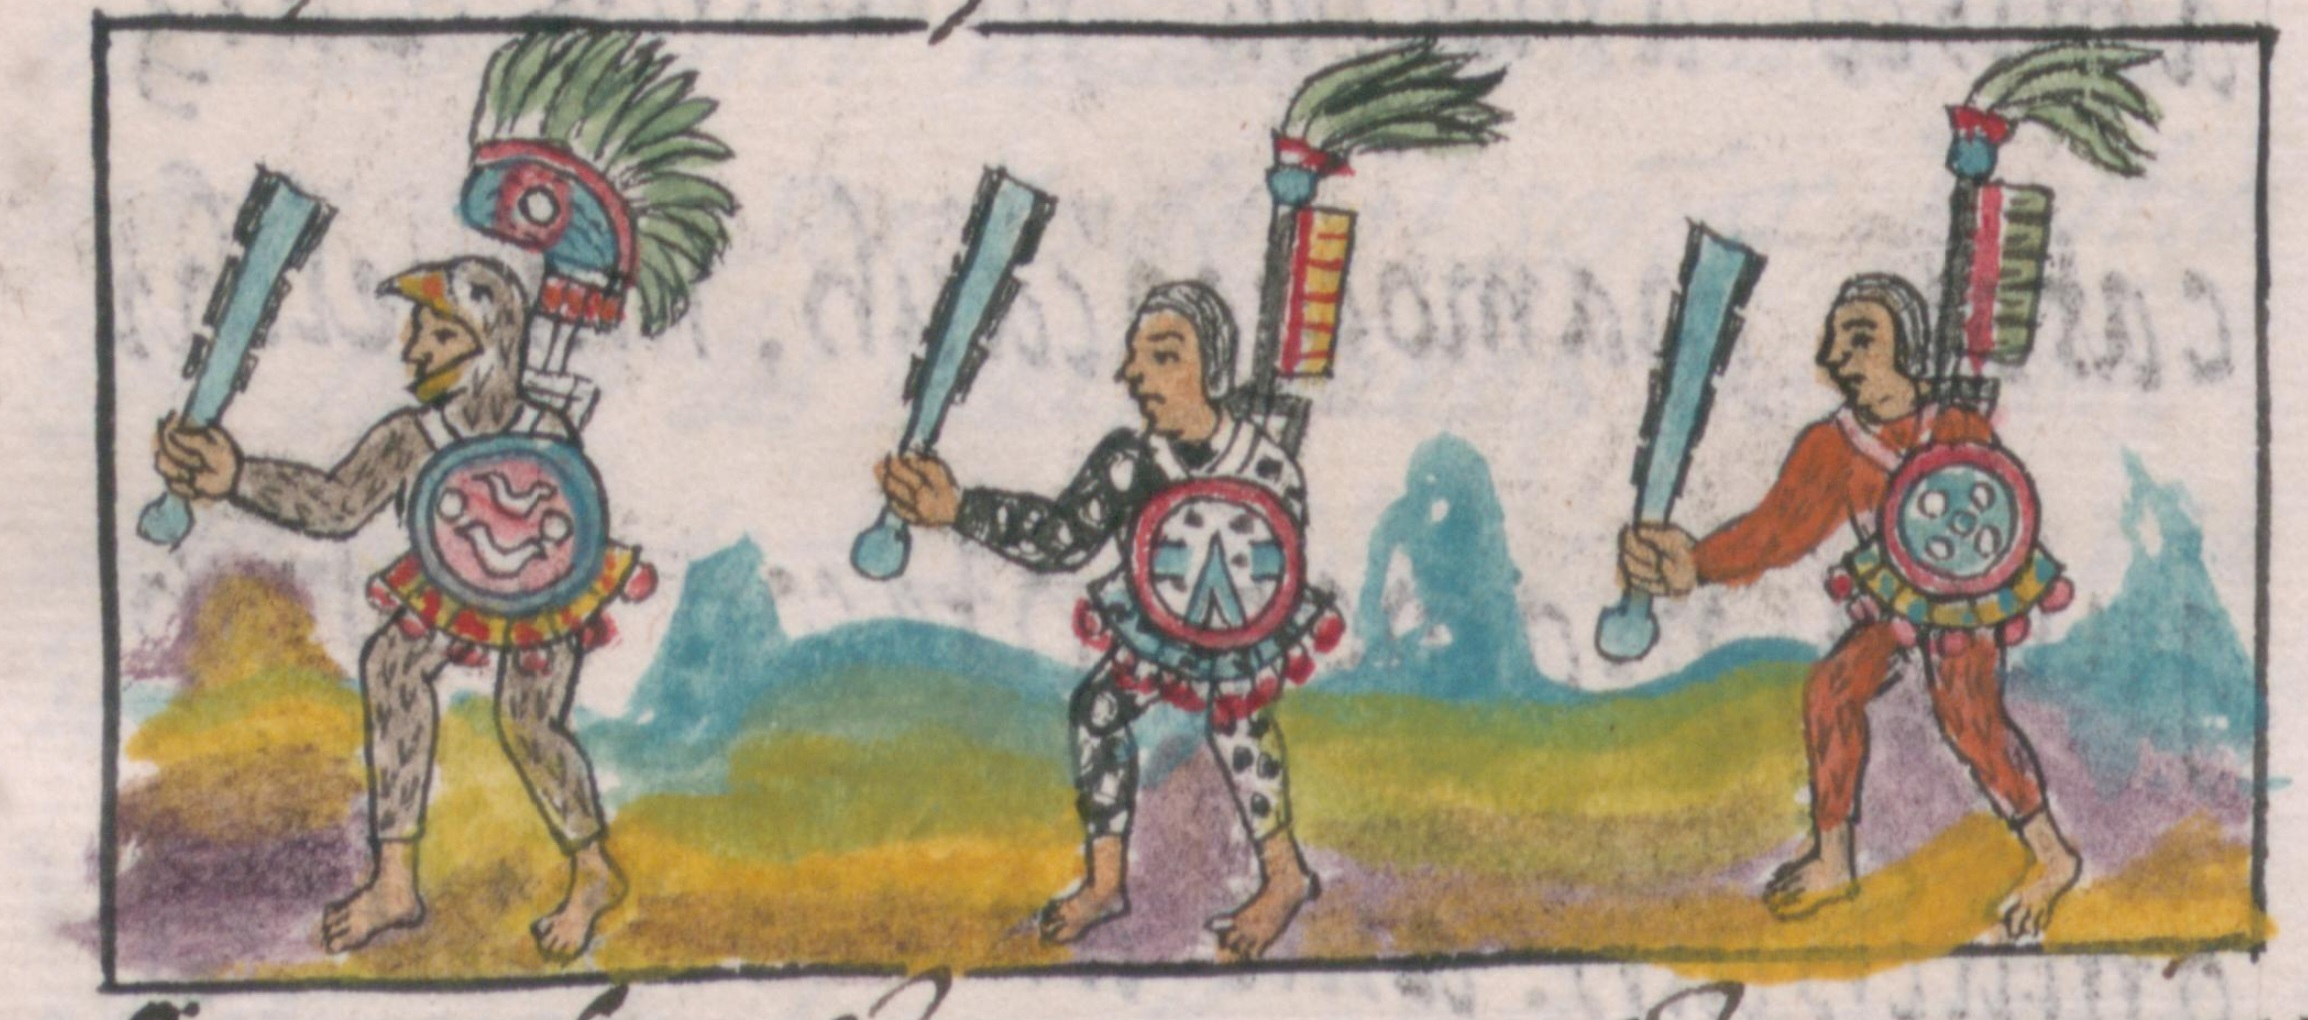 Aztec warriors as shown in the 16th century Florentine Codex